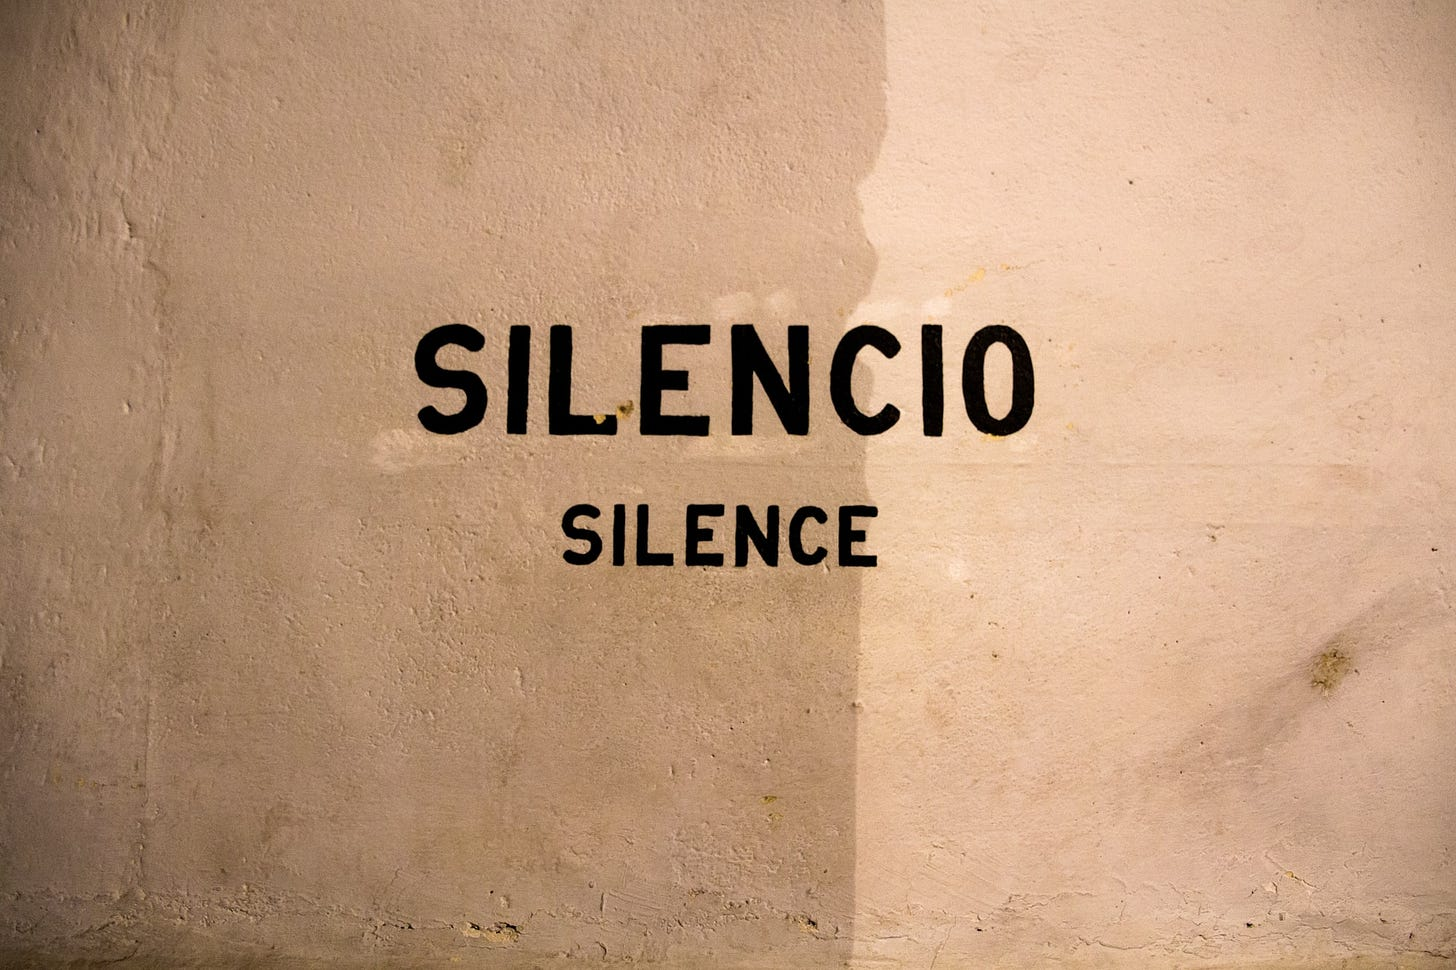 Let's Talk About Silence